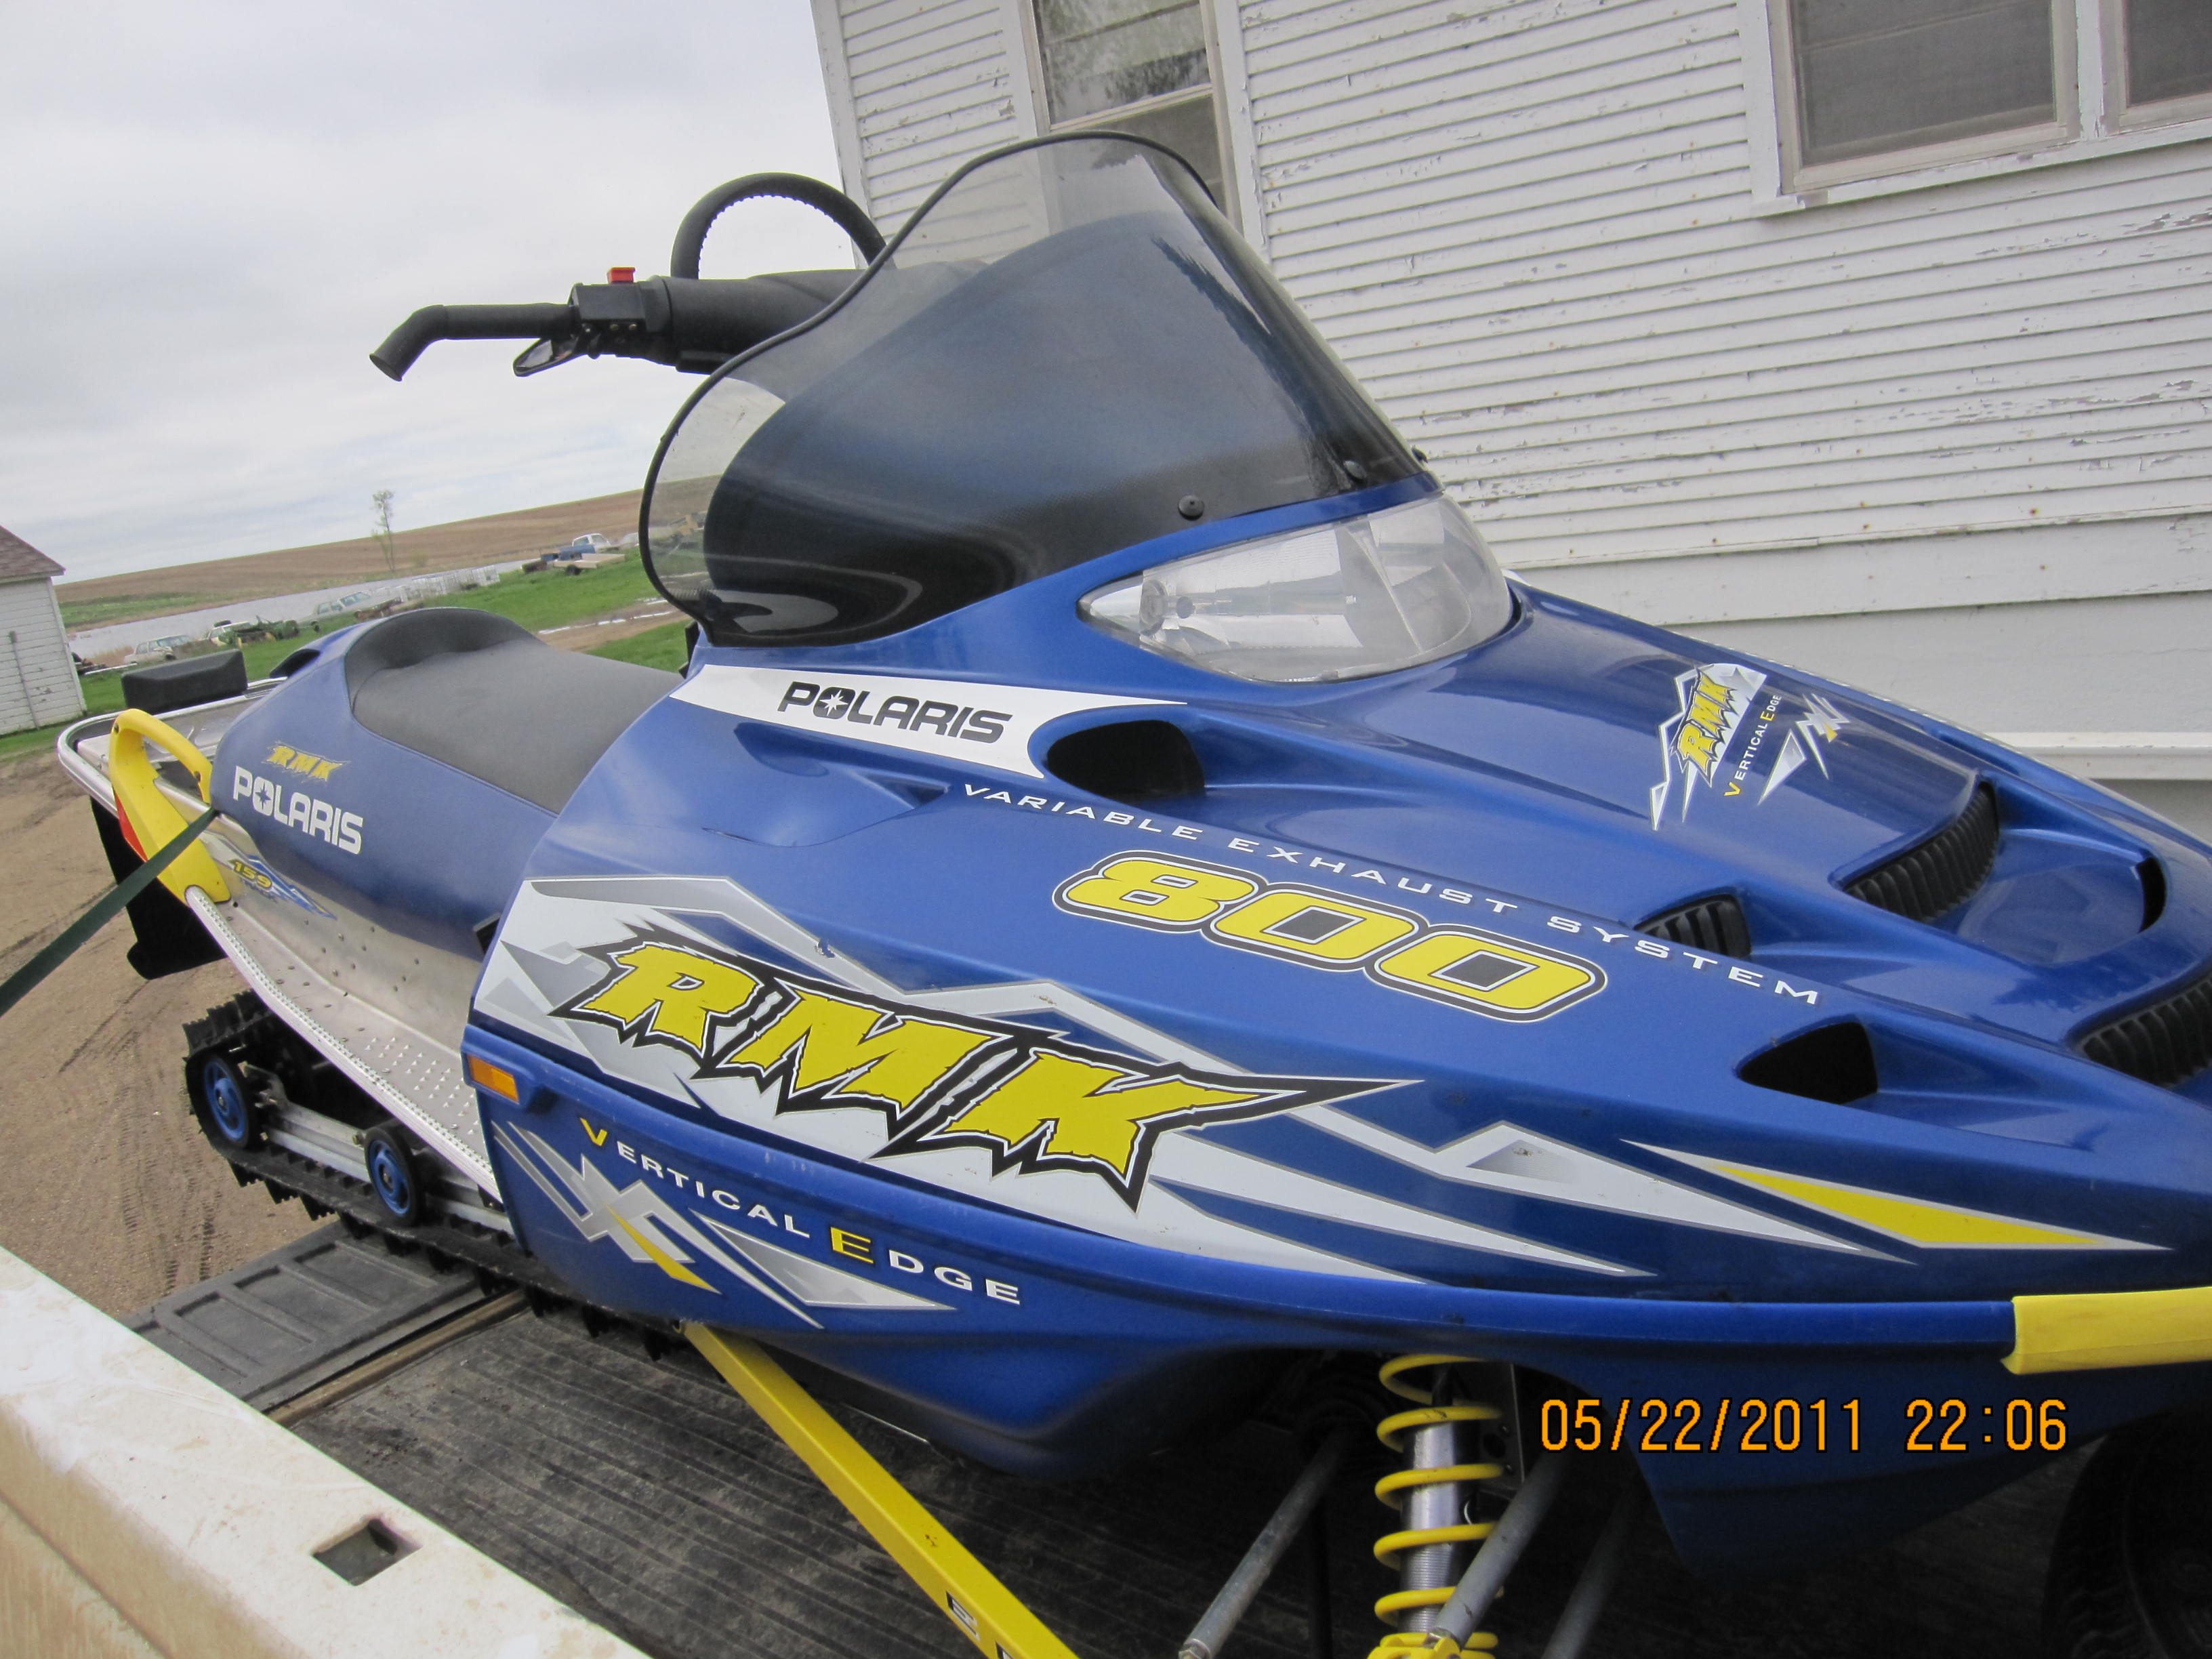 Just need some help on my 2003 rmk 800